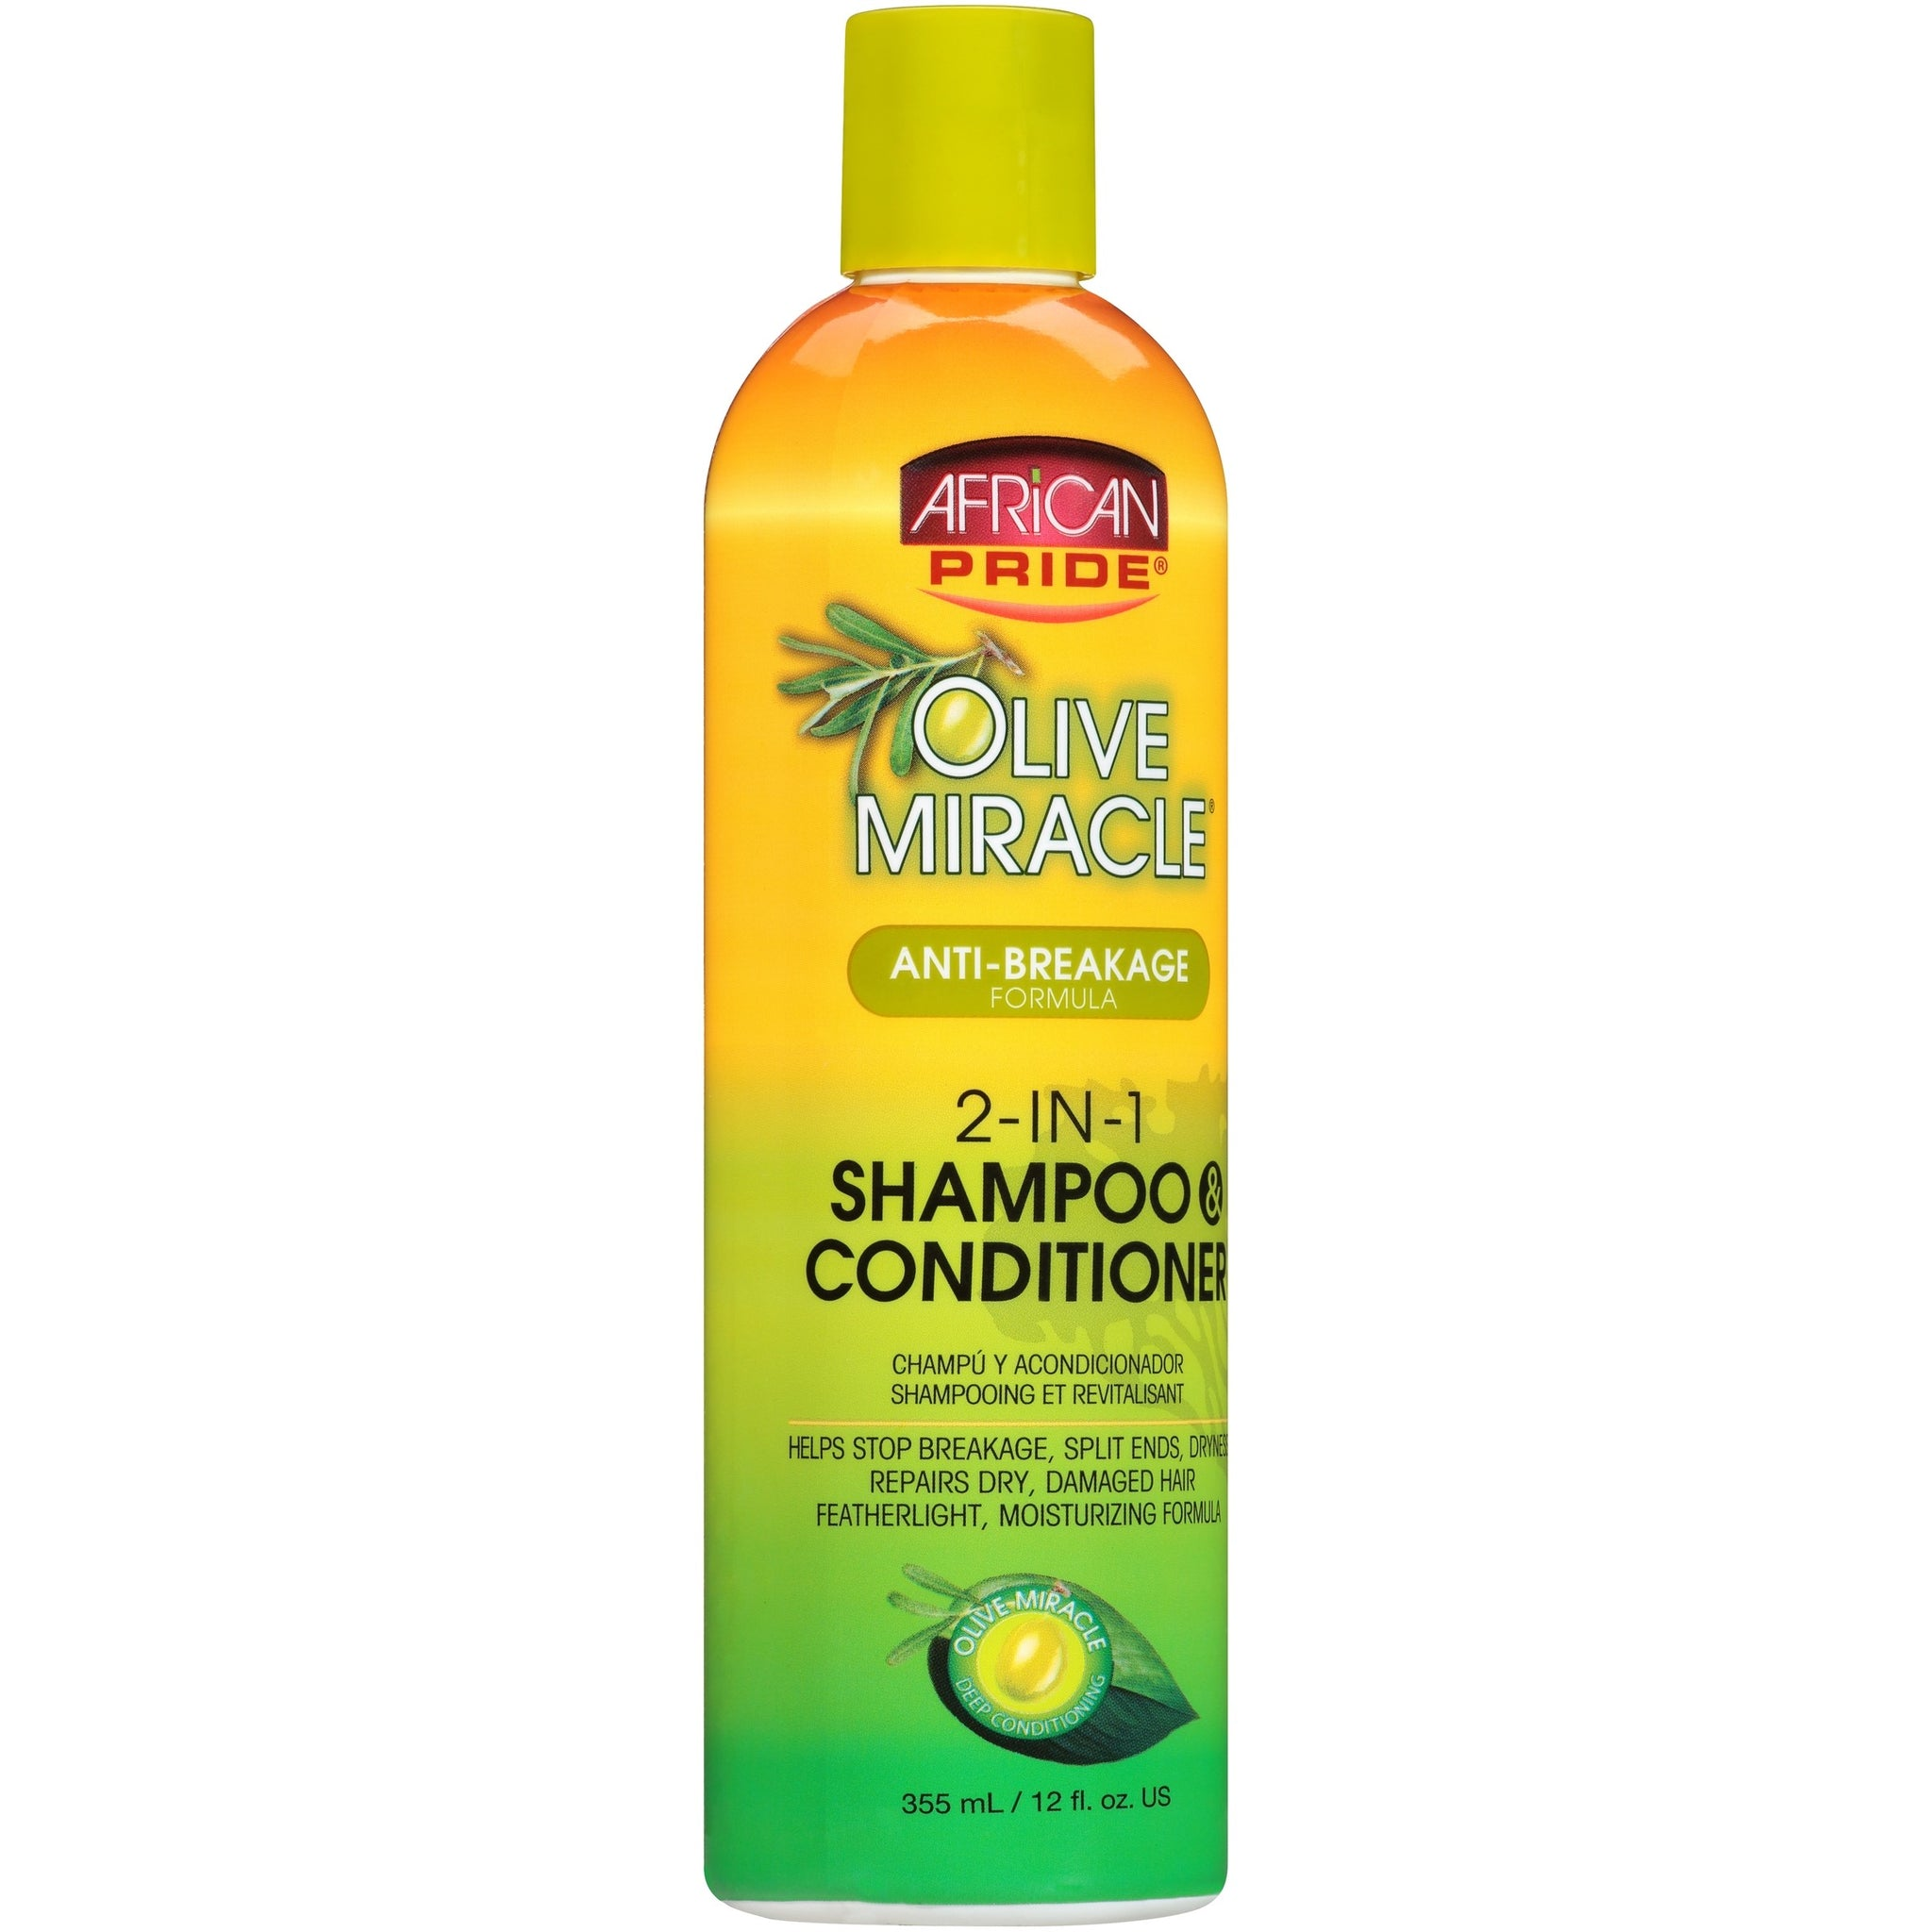 (2 Pack) African Pride Olive Miracle Anti-Breakage Formula 2-in-1 Shampoo & Conditioner 12 fl. oz. Bottle